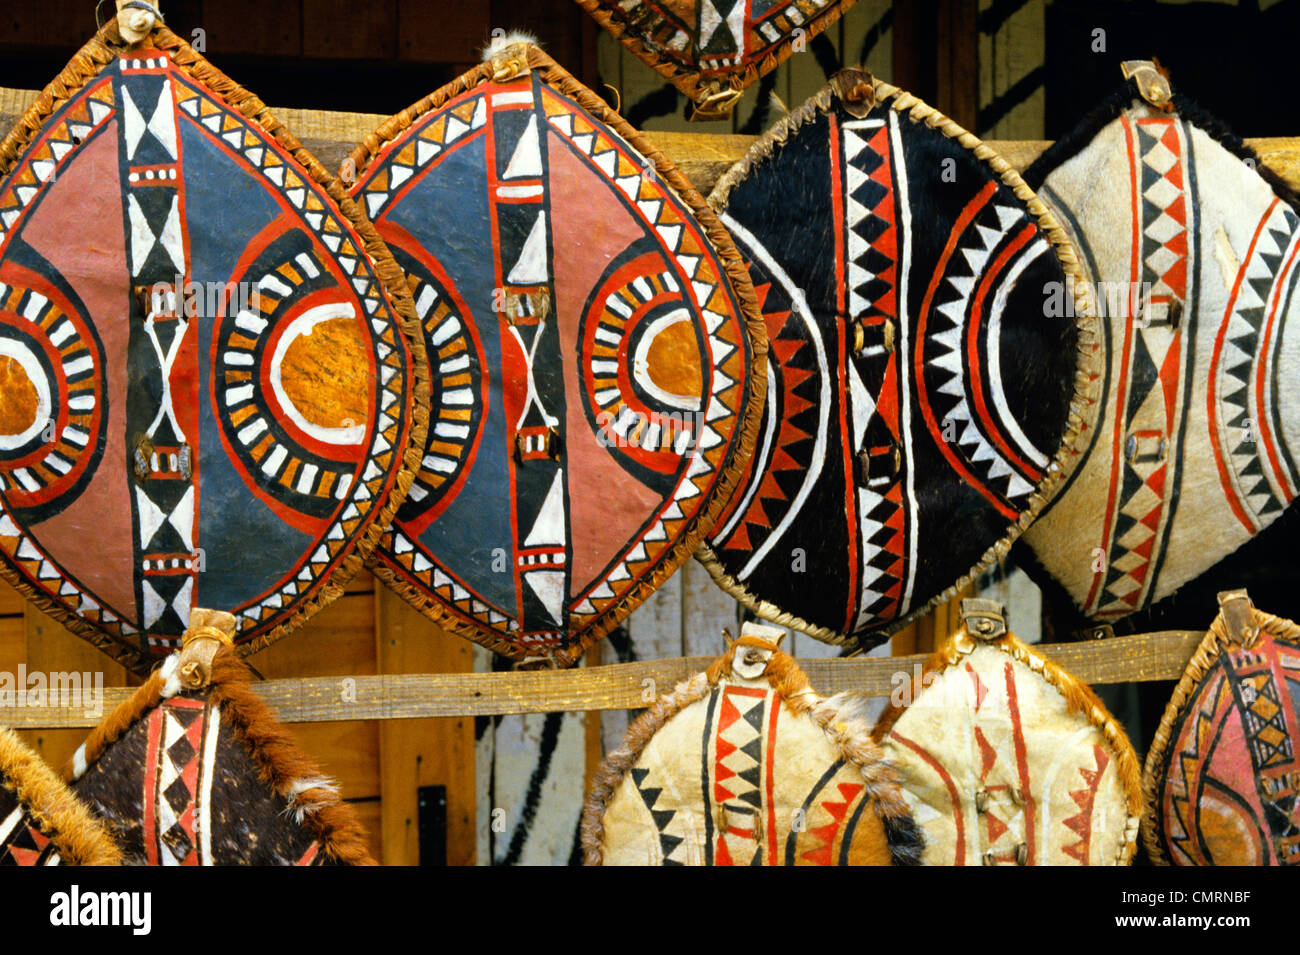 Masai Shield Stock Photos & Masai Shield Stock Images - Alamy